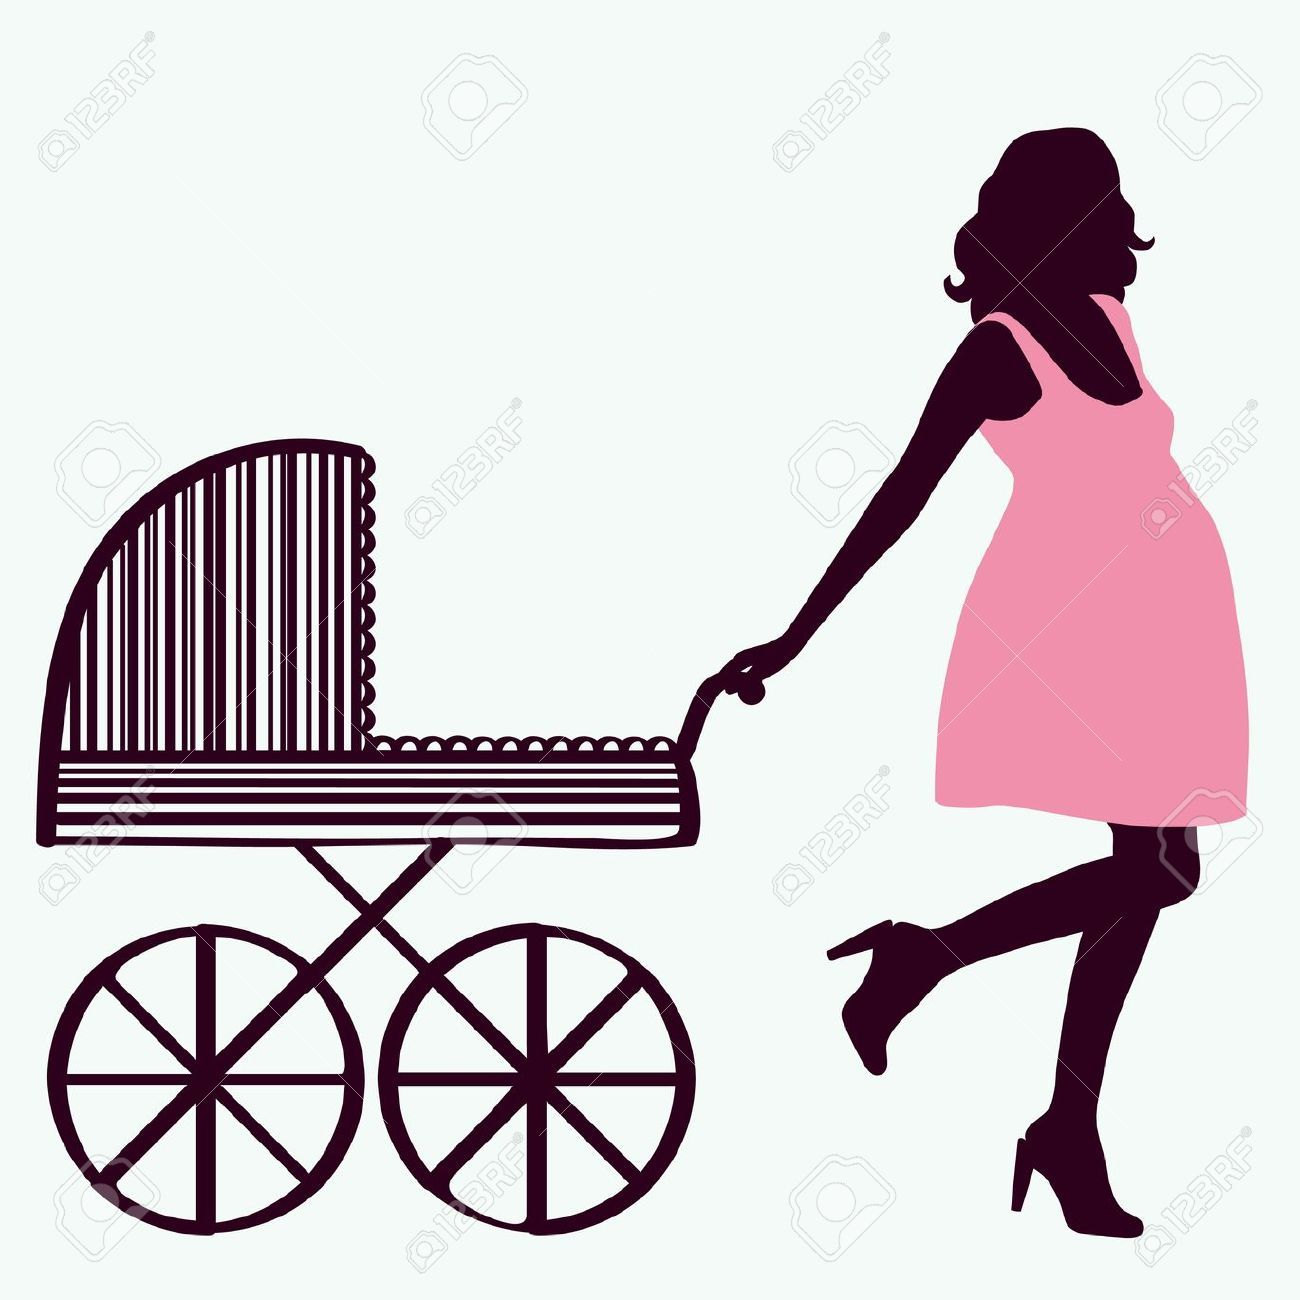 1300x1300 9429908 Woman Silhouette With Baby Carriage Stock Vector Pregnant